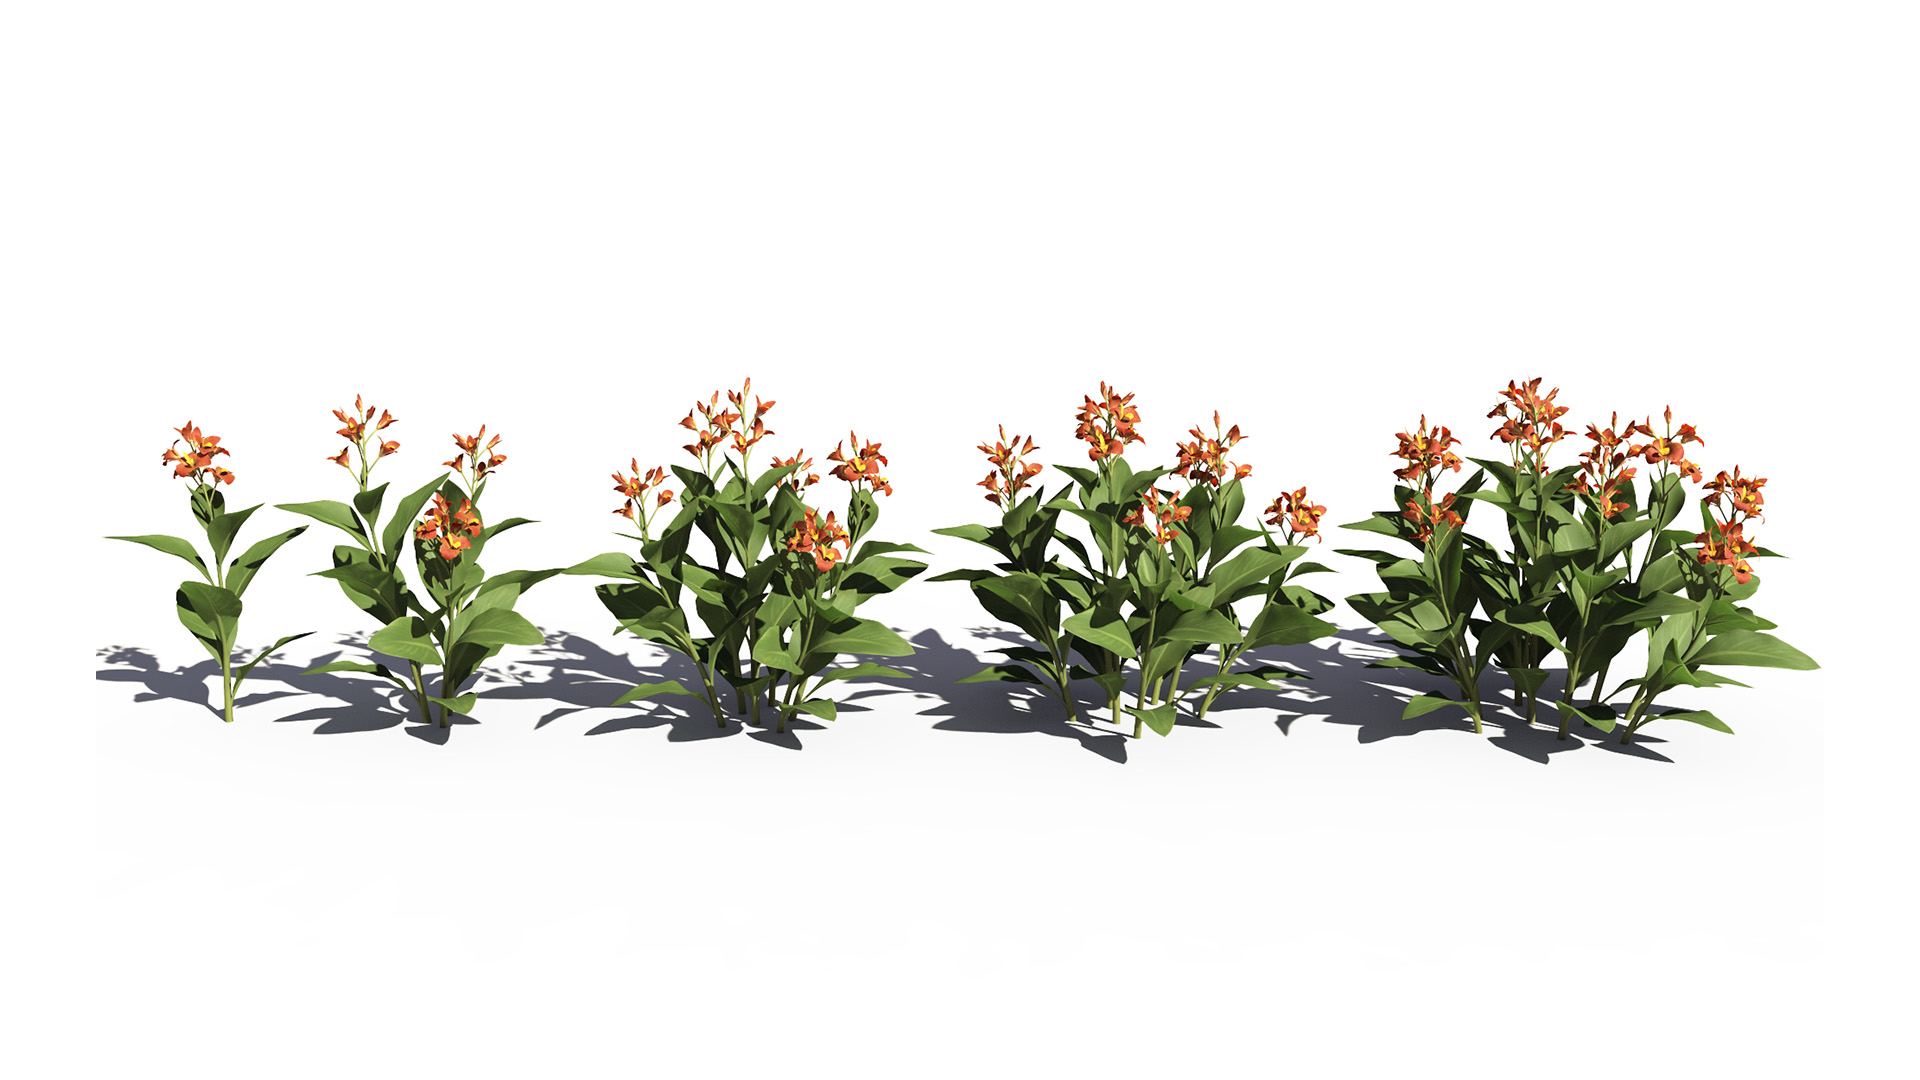 3D model of the Canna lily Canna x generalis orange different presets